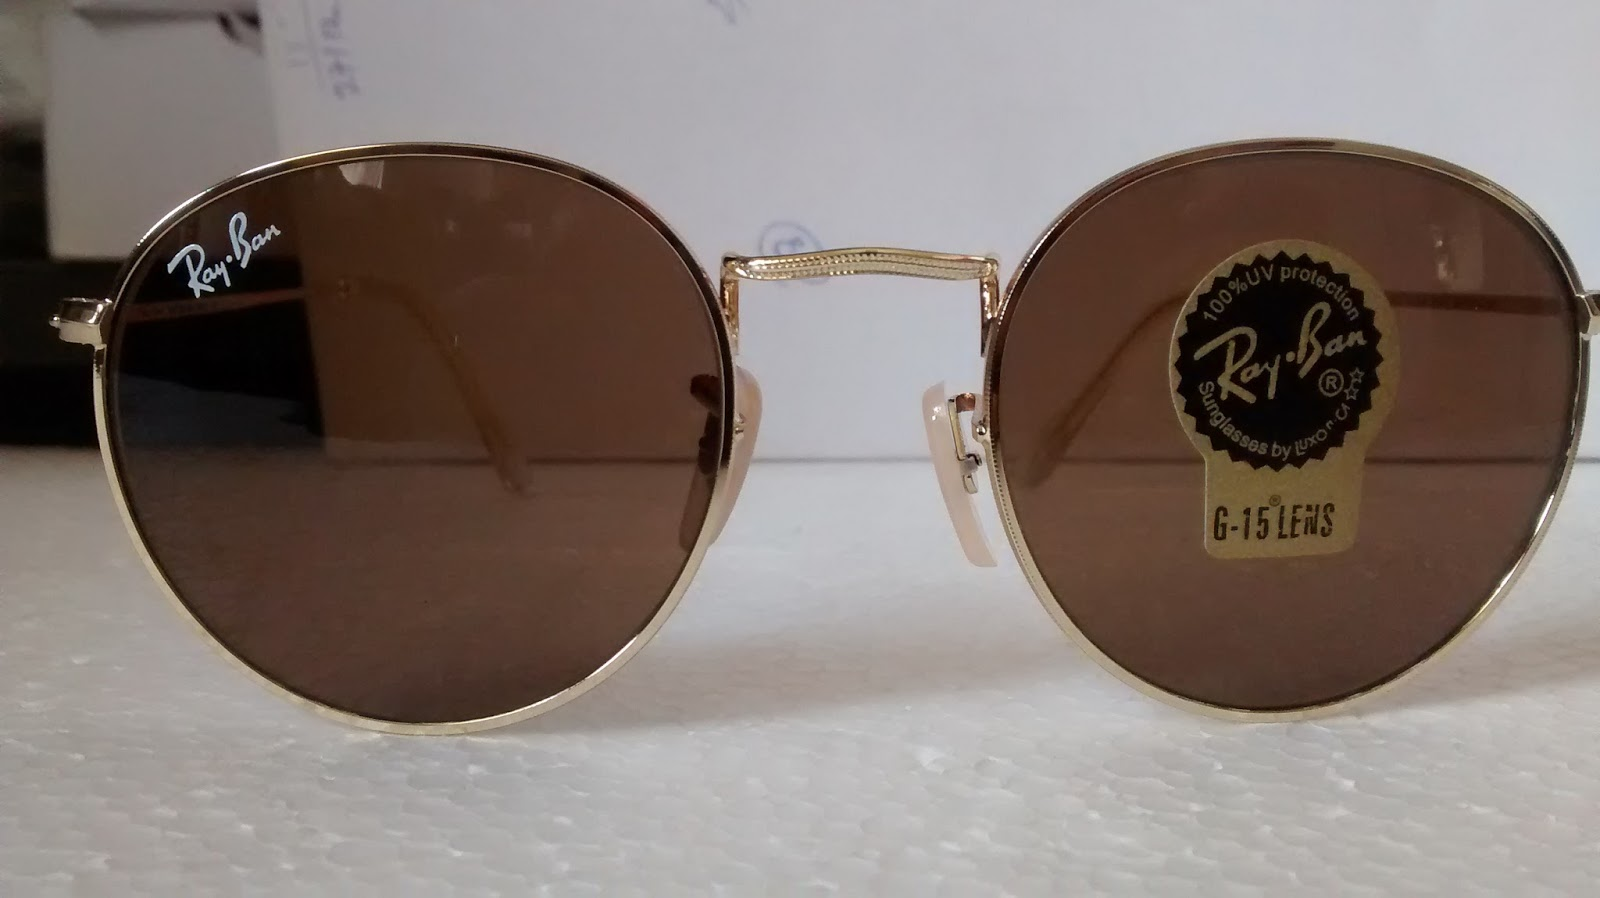 c12d5bf69e8 Ray Ban Round Metal. Gold Frame BrownLens. UNISEX both for Men Women. Price  1300 Only. Email  doorshopping gmail.com